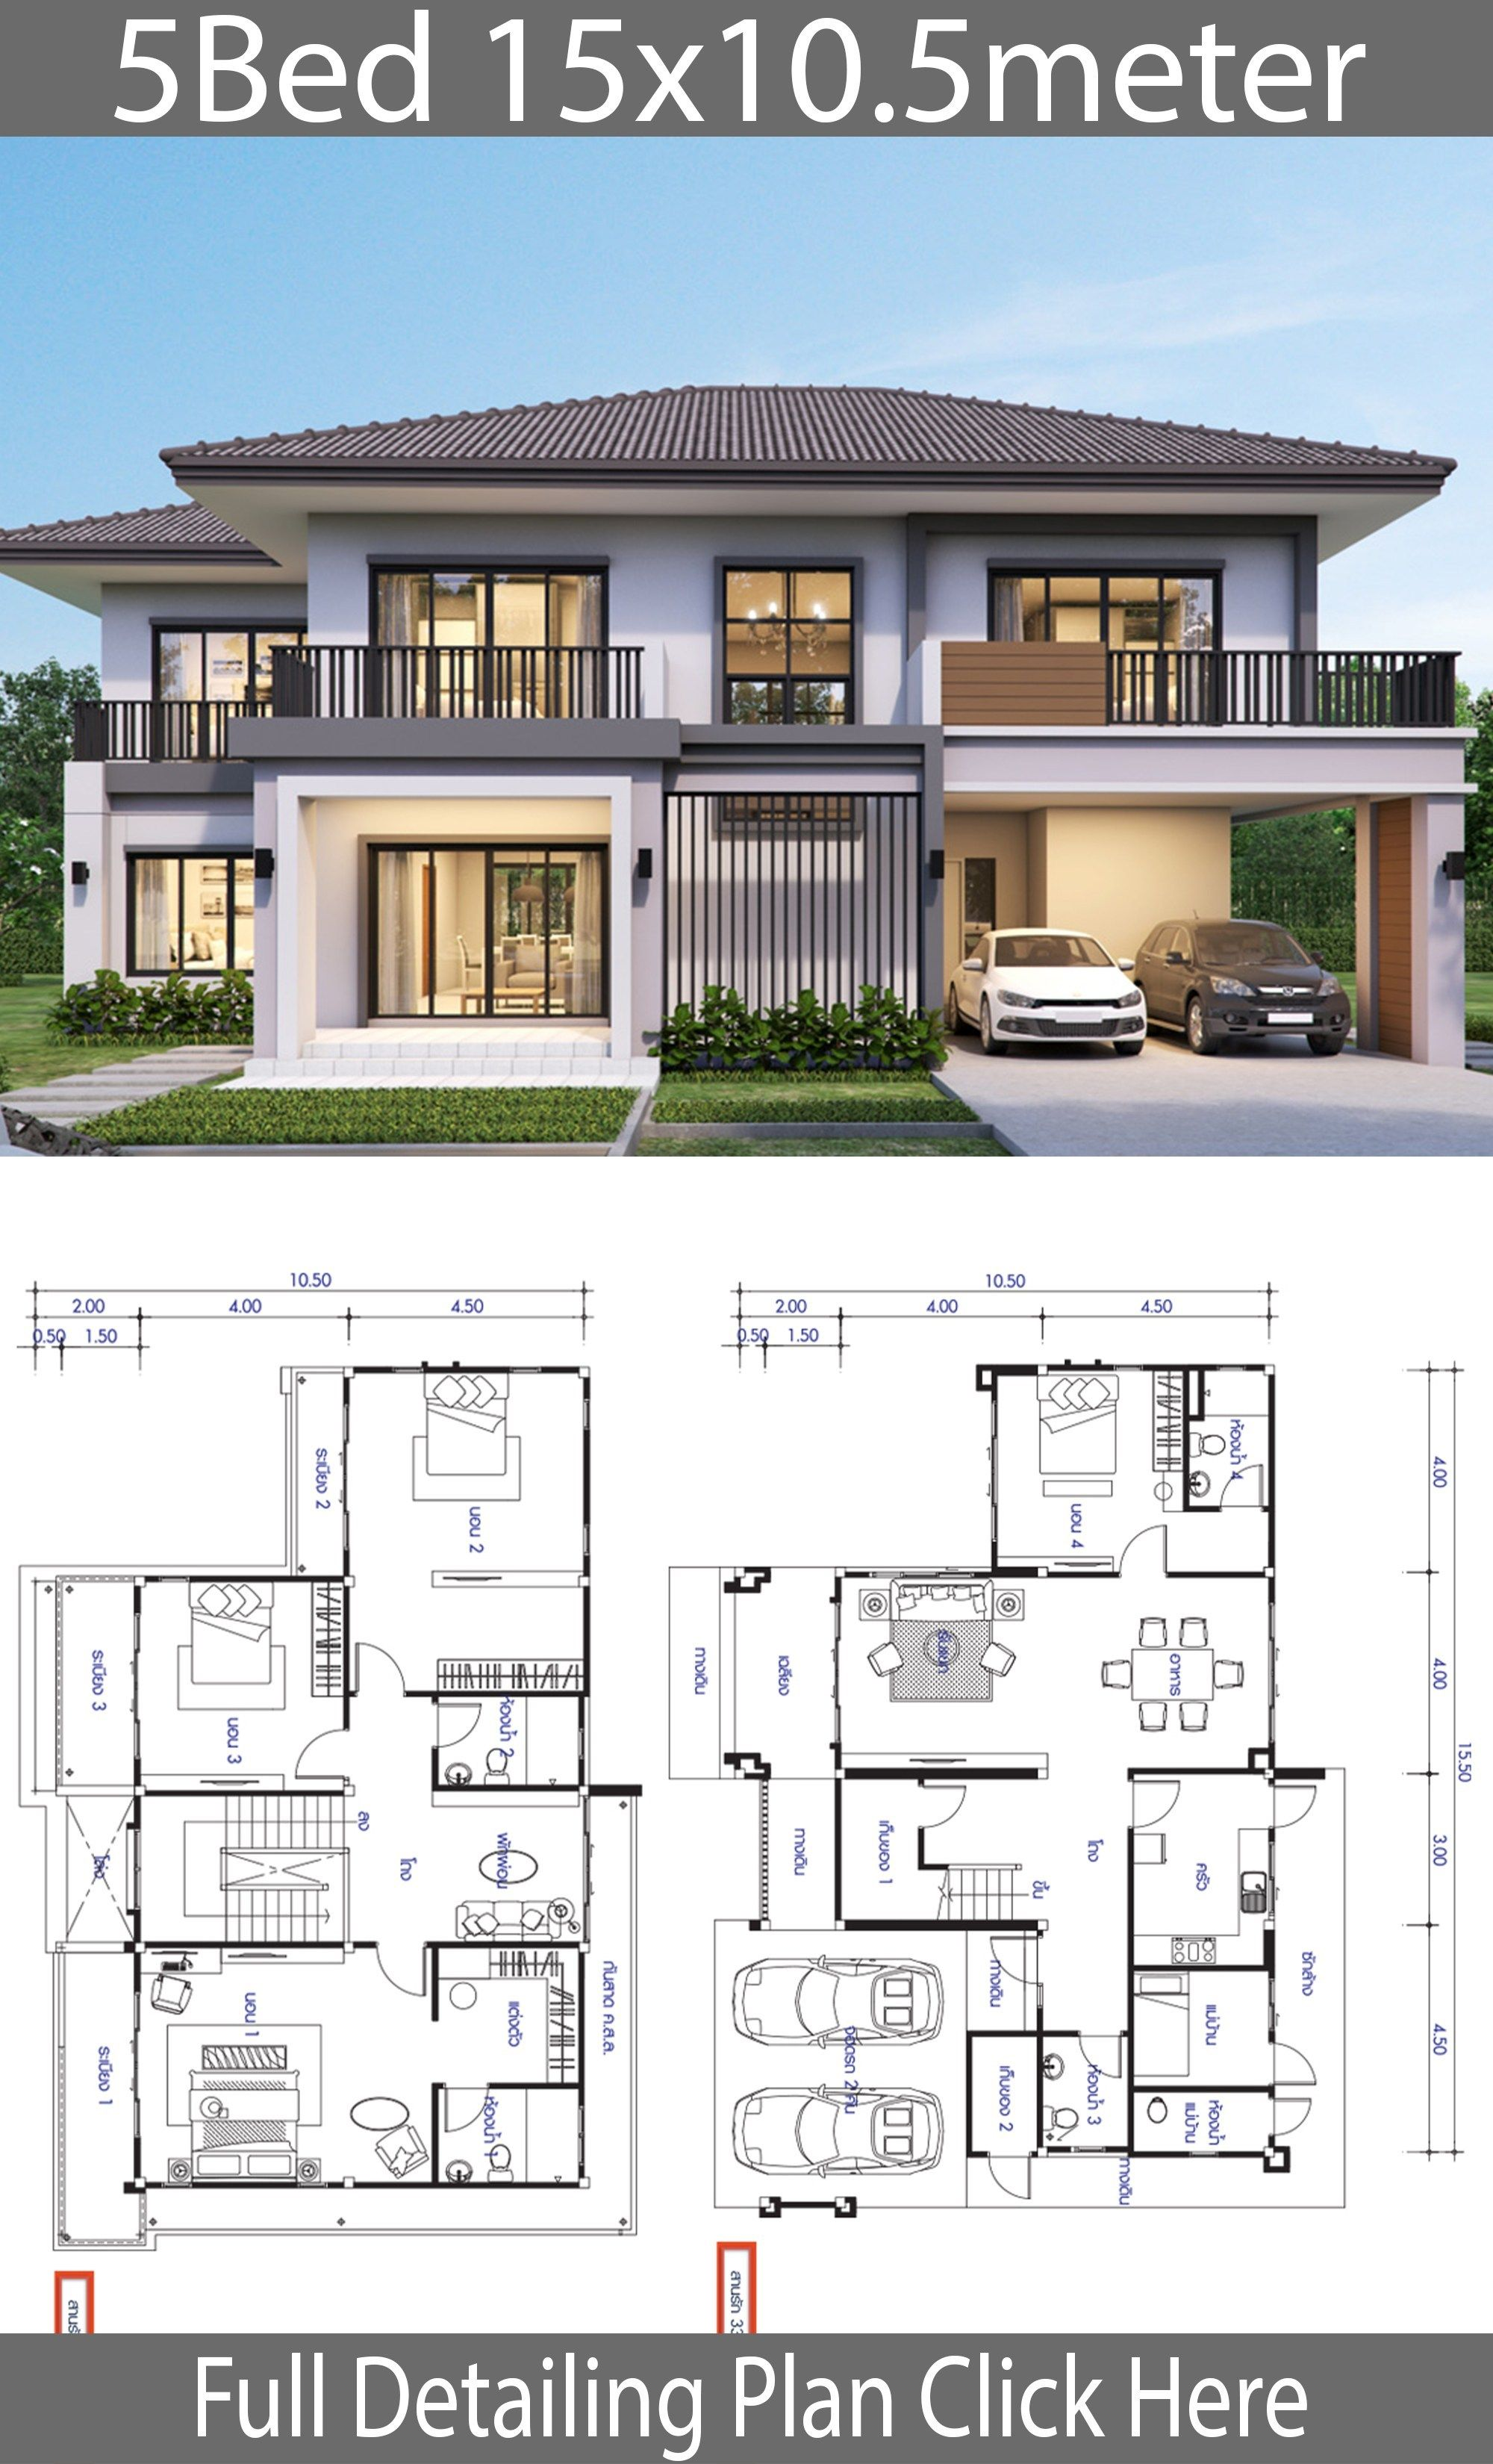 House design plan 5.5x5.5m with 5 bedrooms. Style ModernHouse